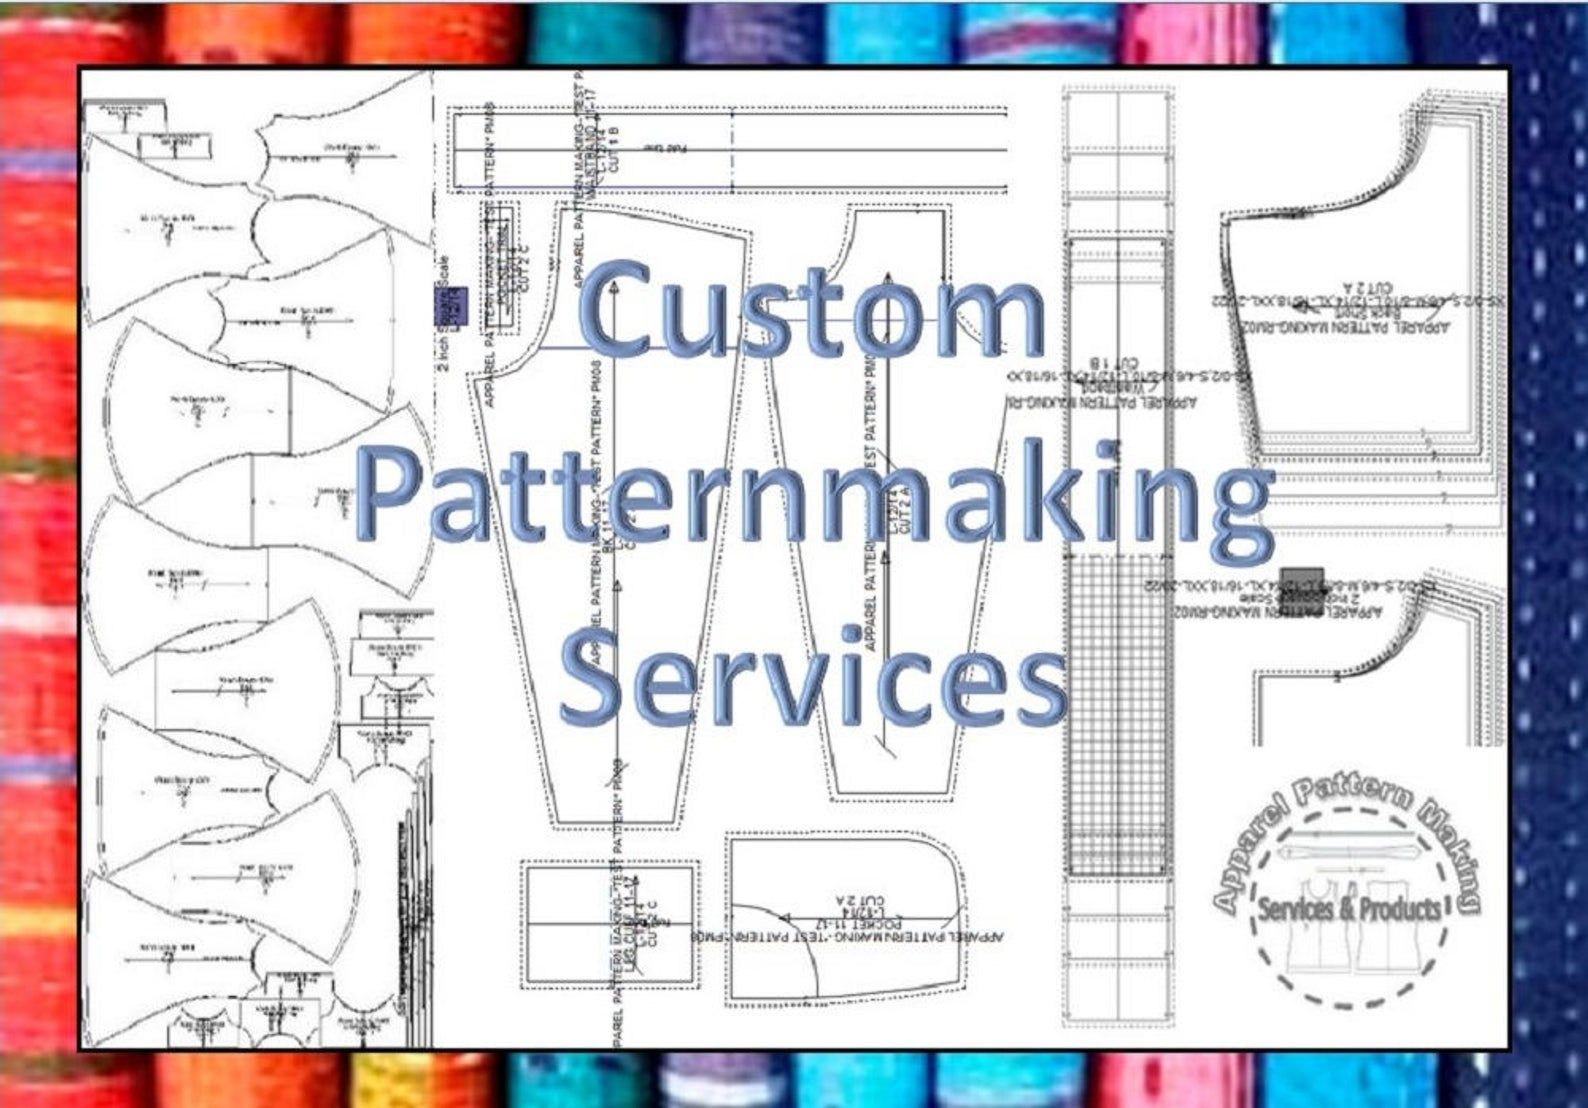 Custom Design Your Own Clothing Sewing Patterns Fashion Design Pdf Patterns Digital Patternmaking Design Your Idea Sewing Patterns Design Your Own Custom Design